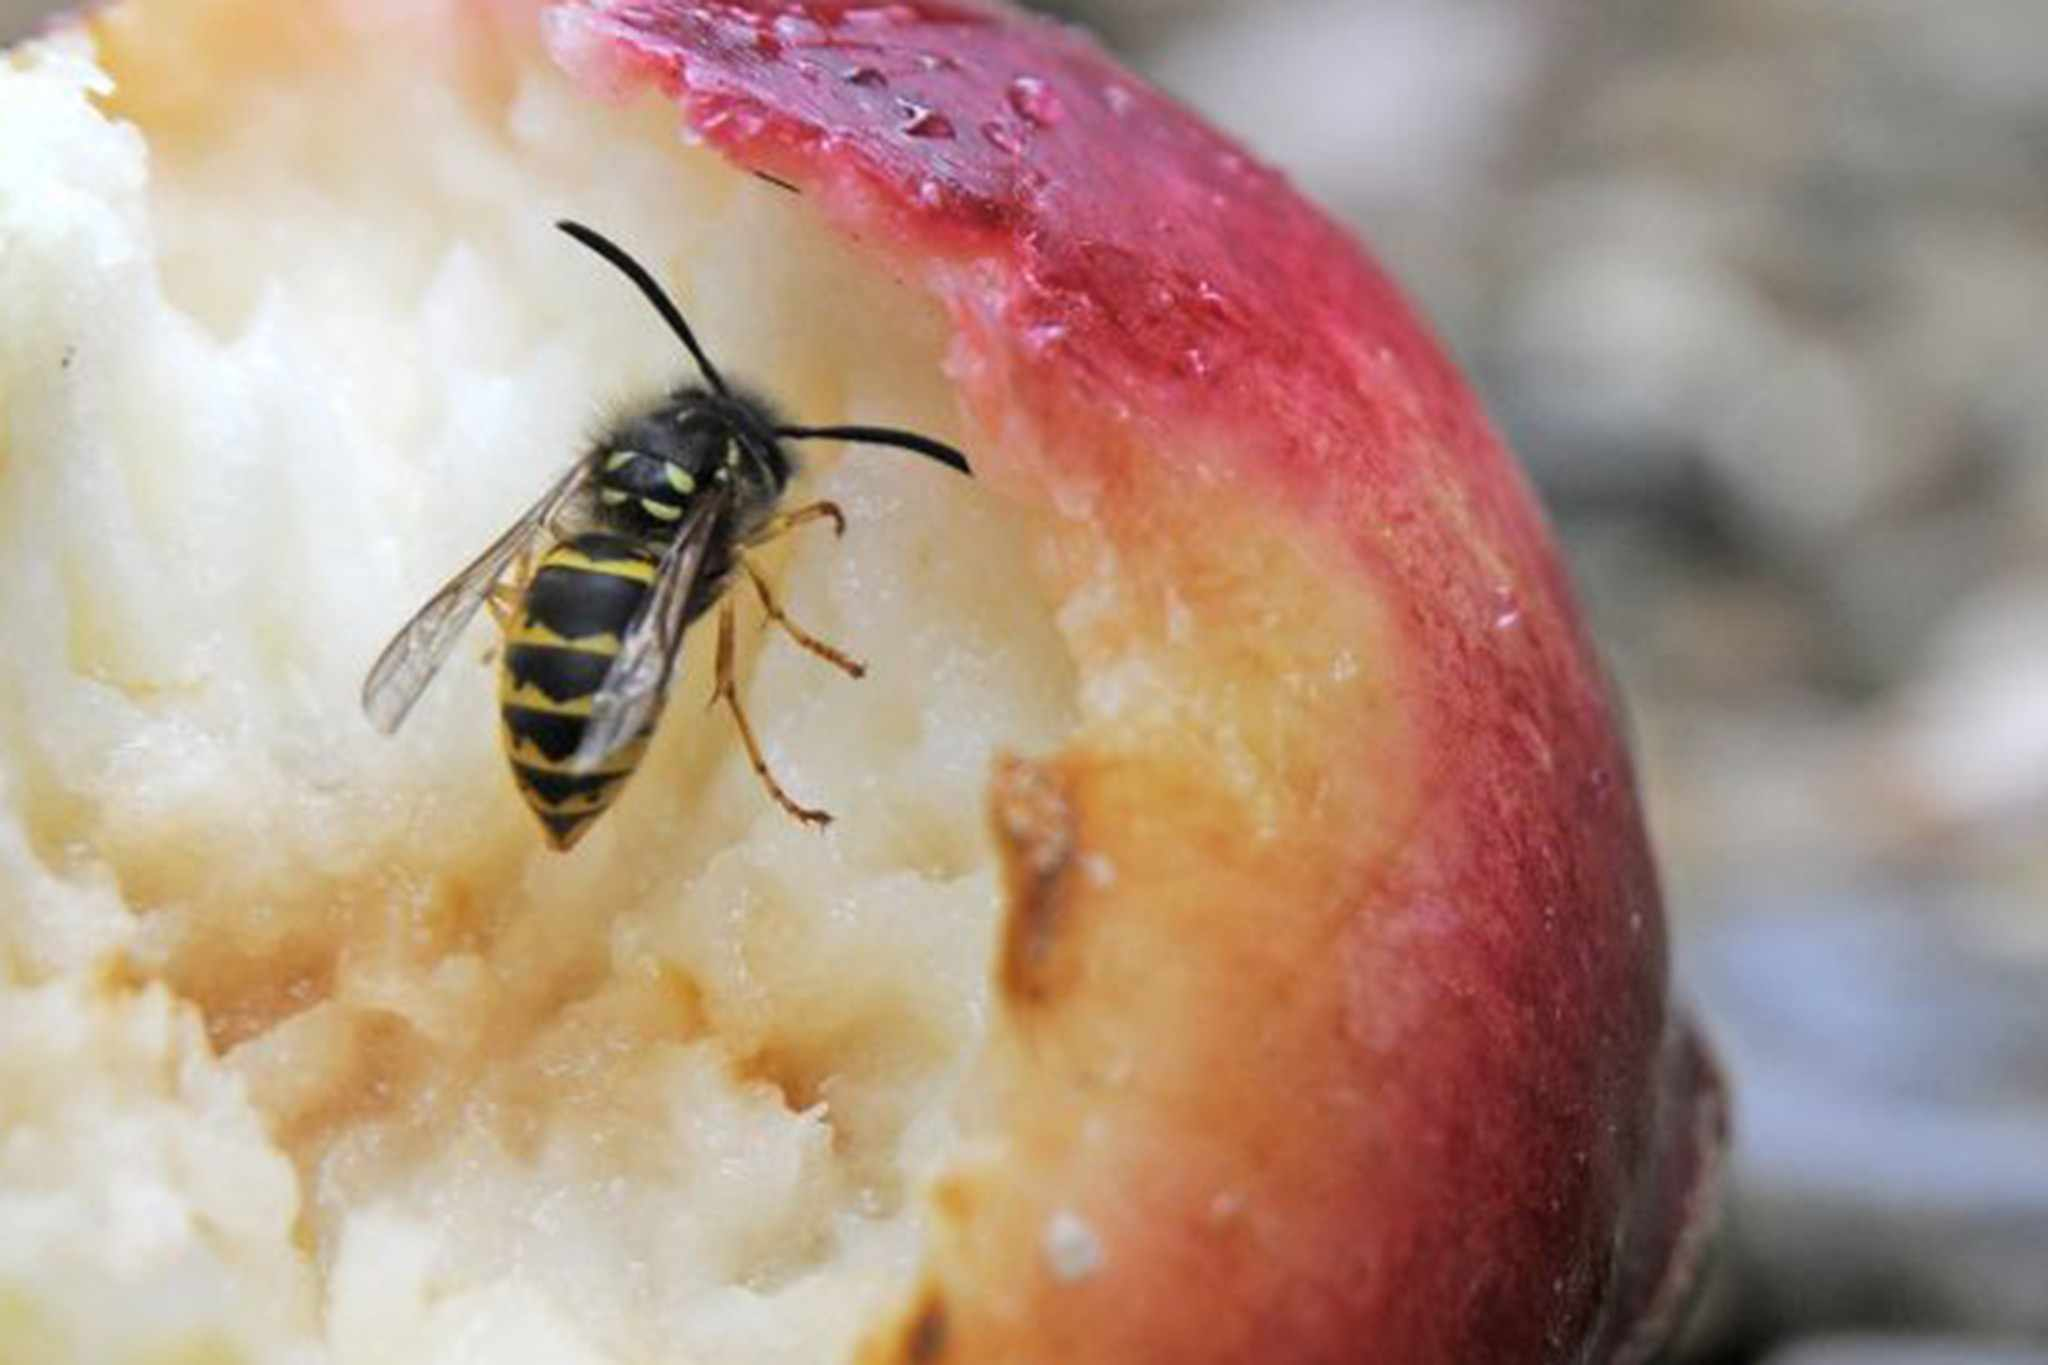 A wasp eating an apple